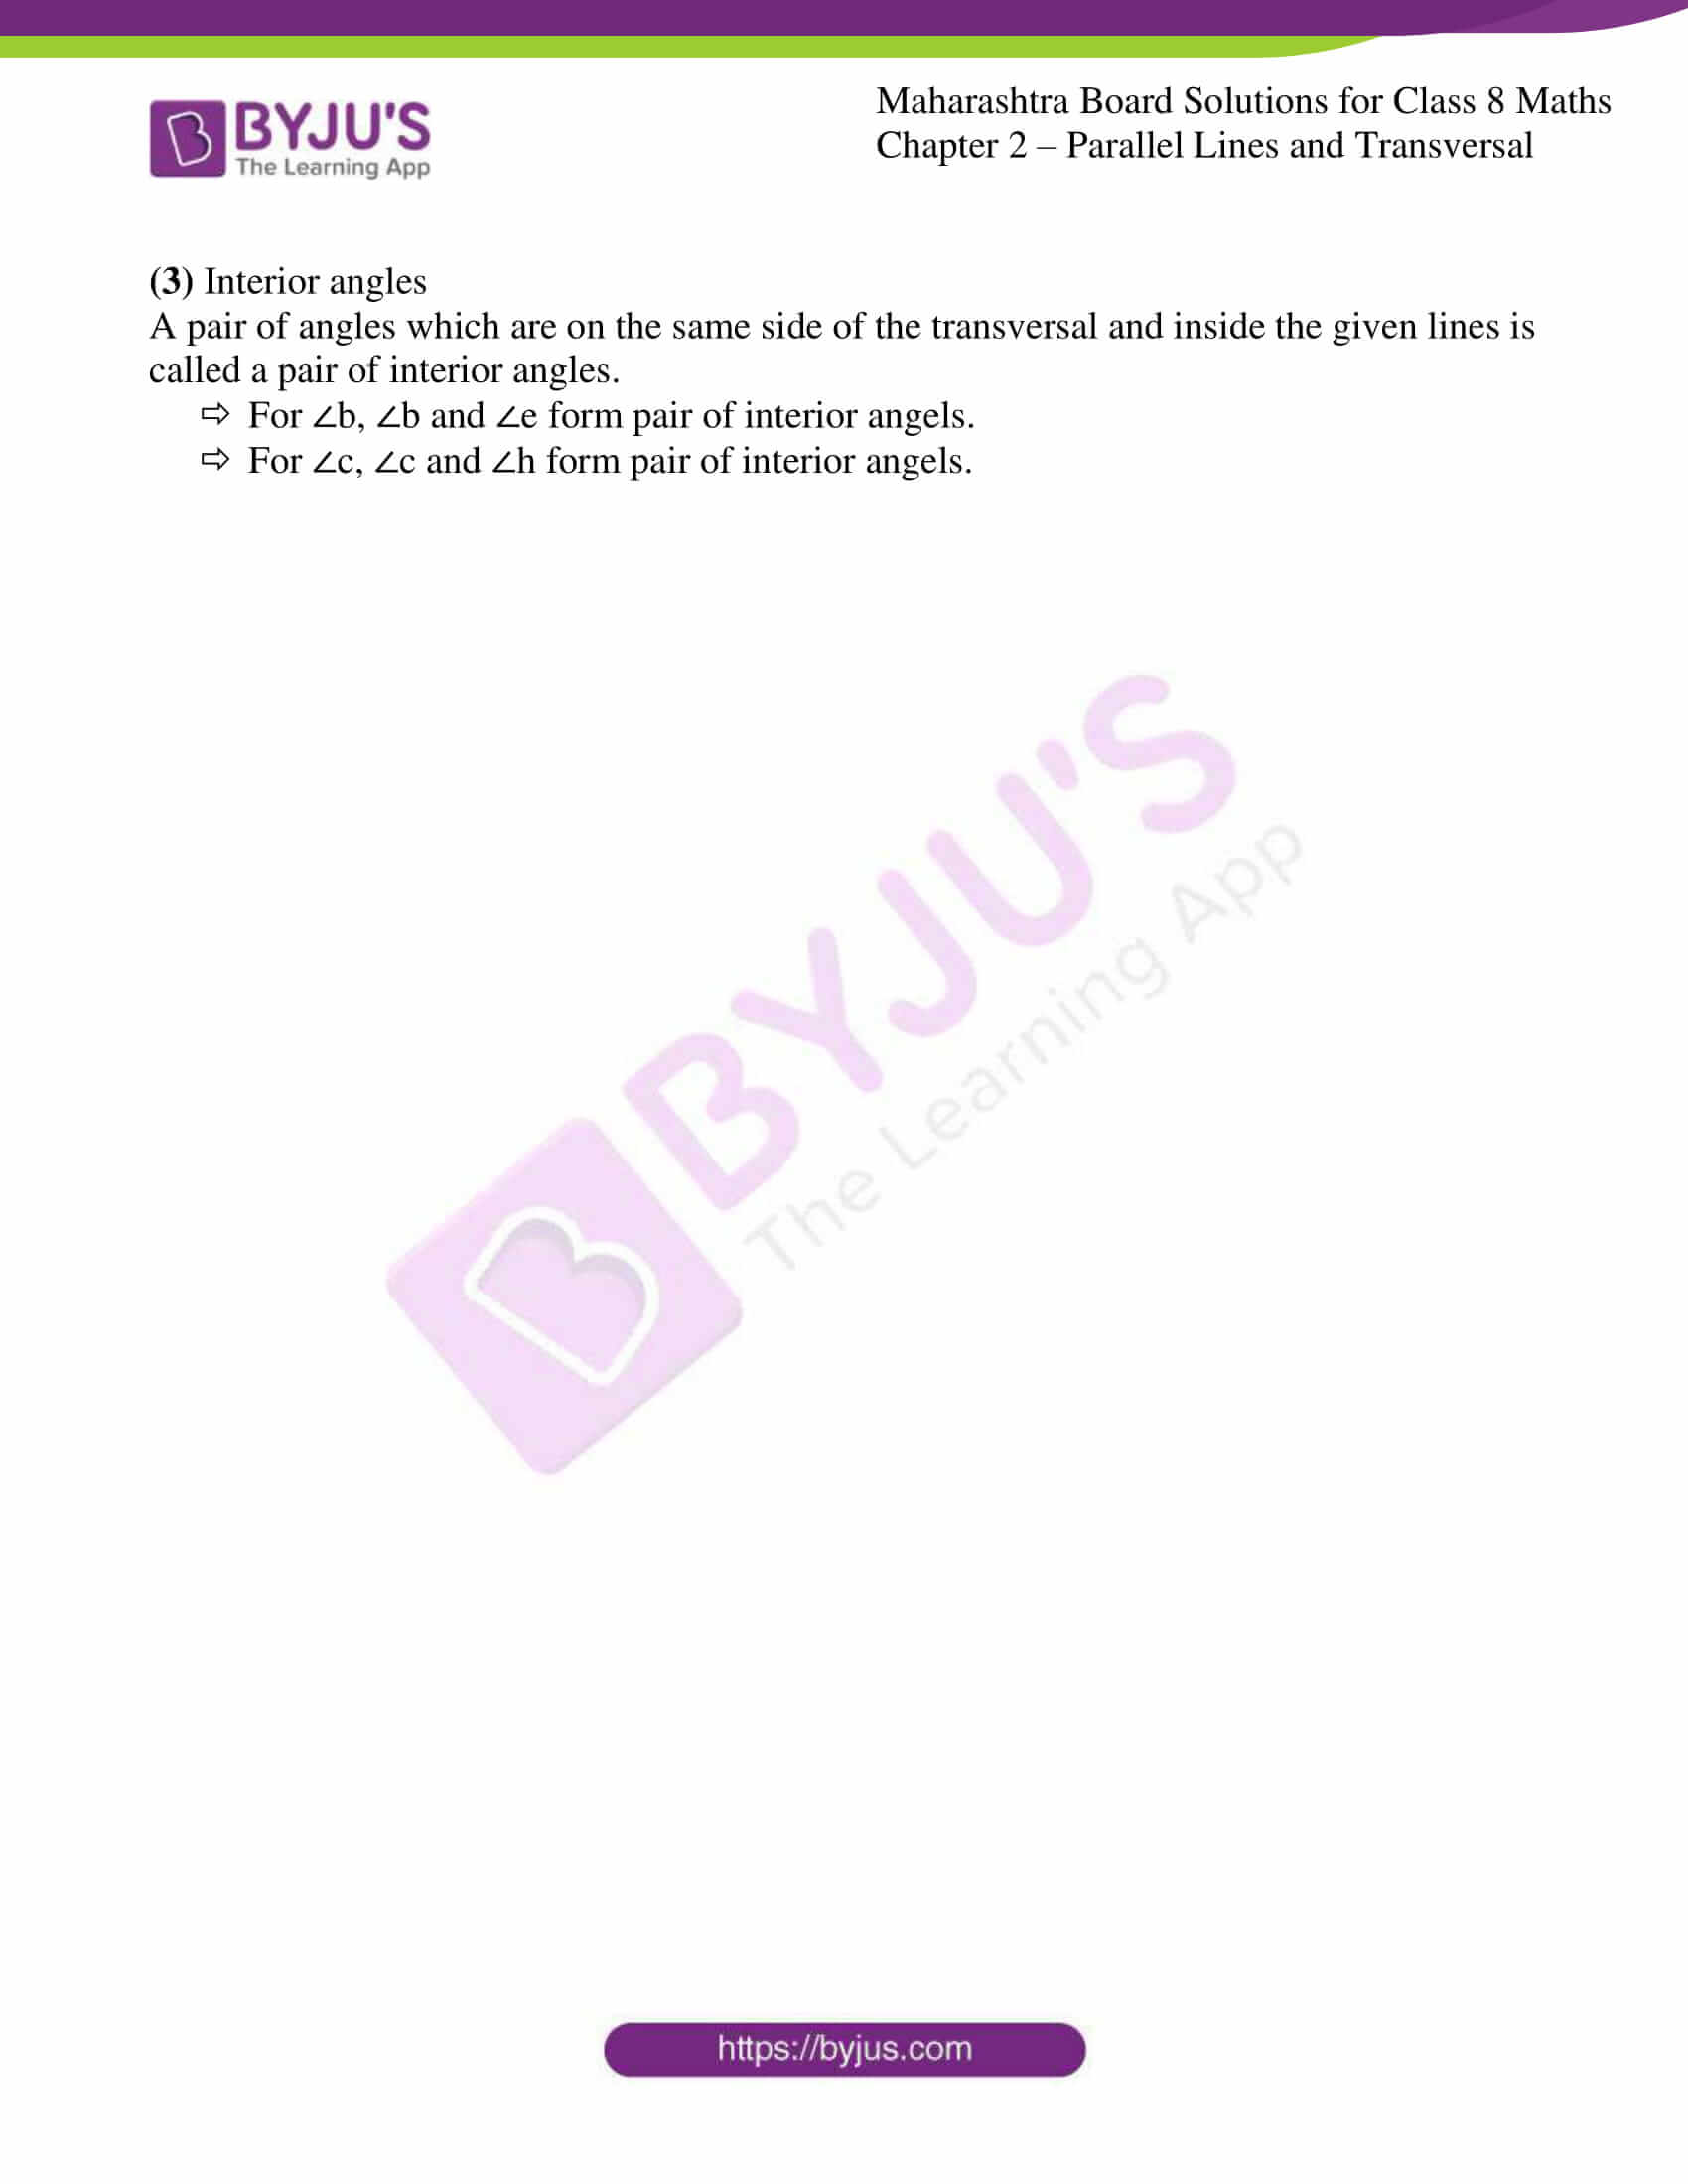 msbshse sol for class 8 maths chapter 2 03